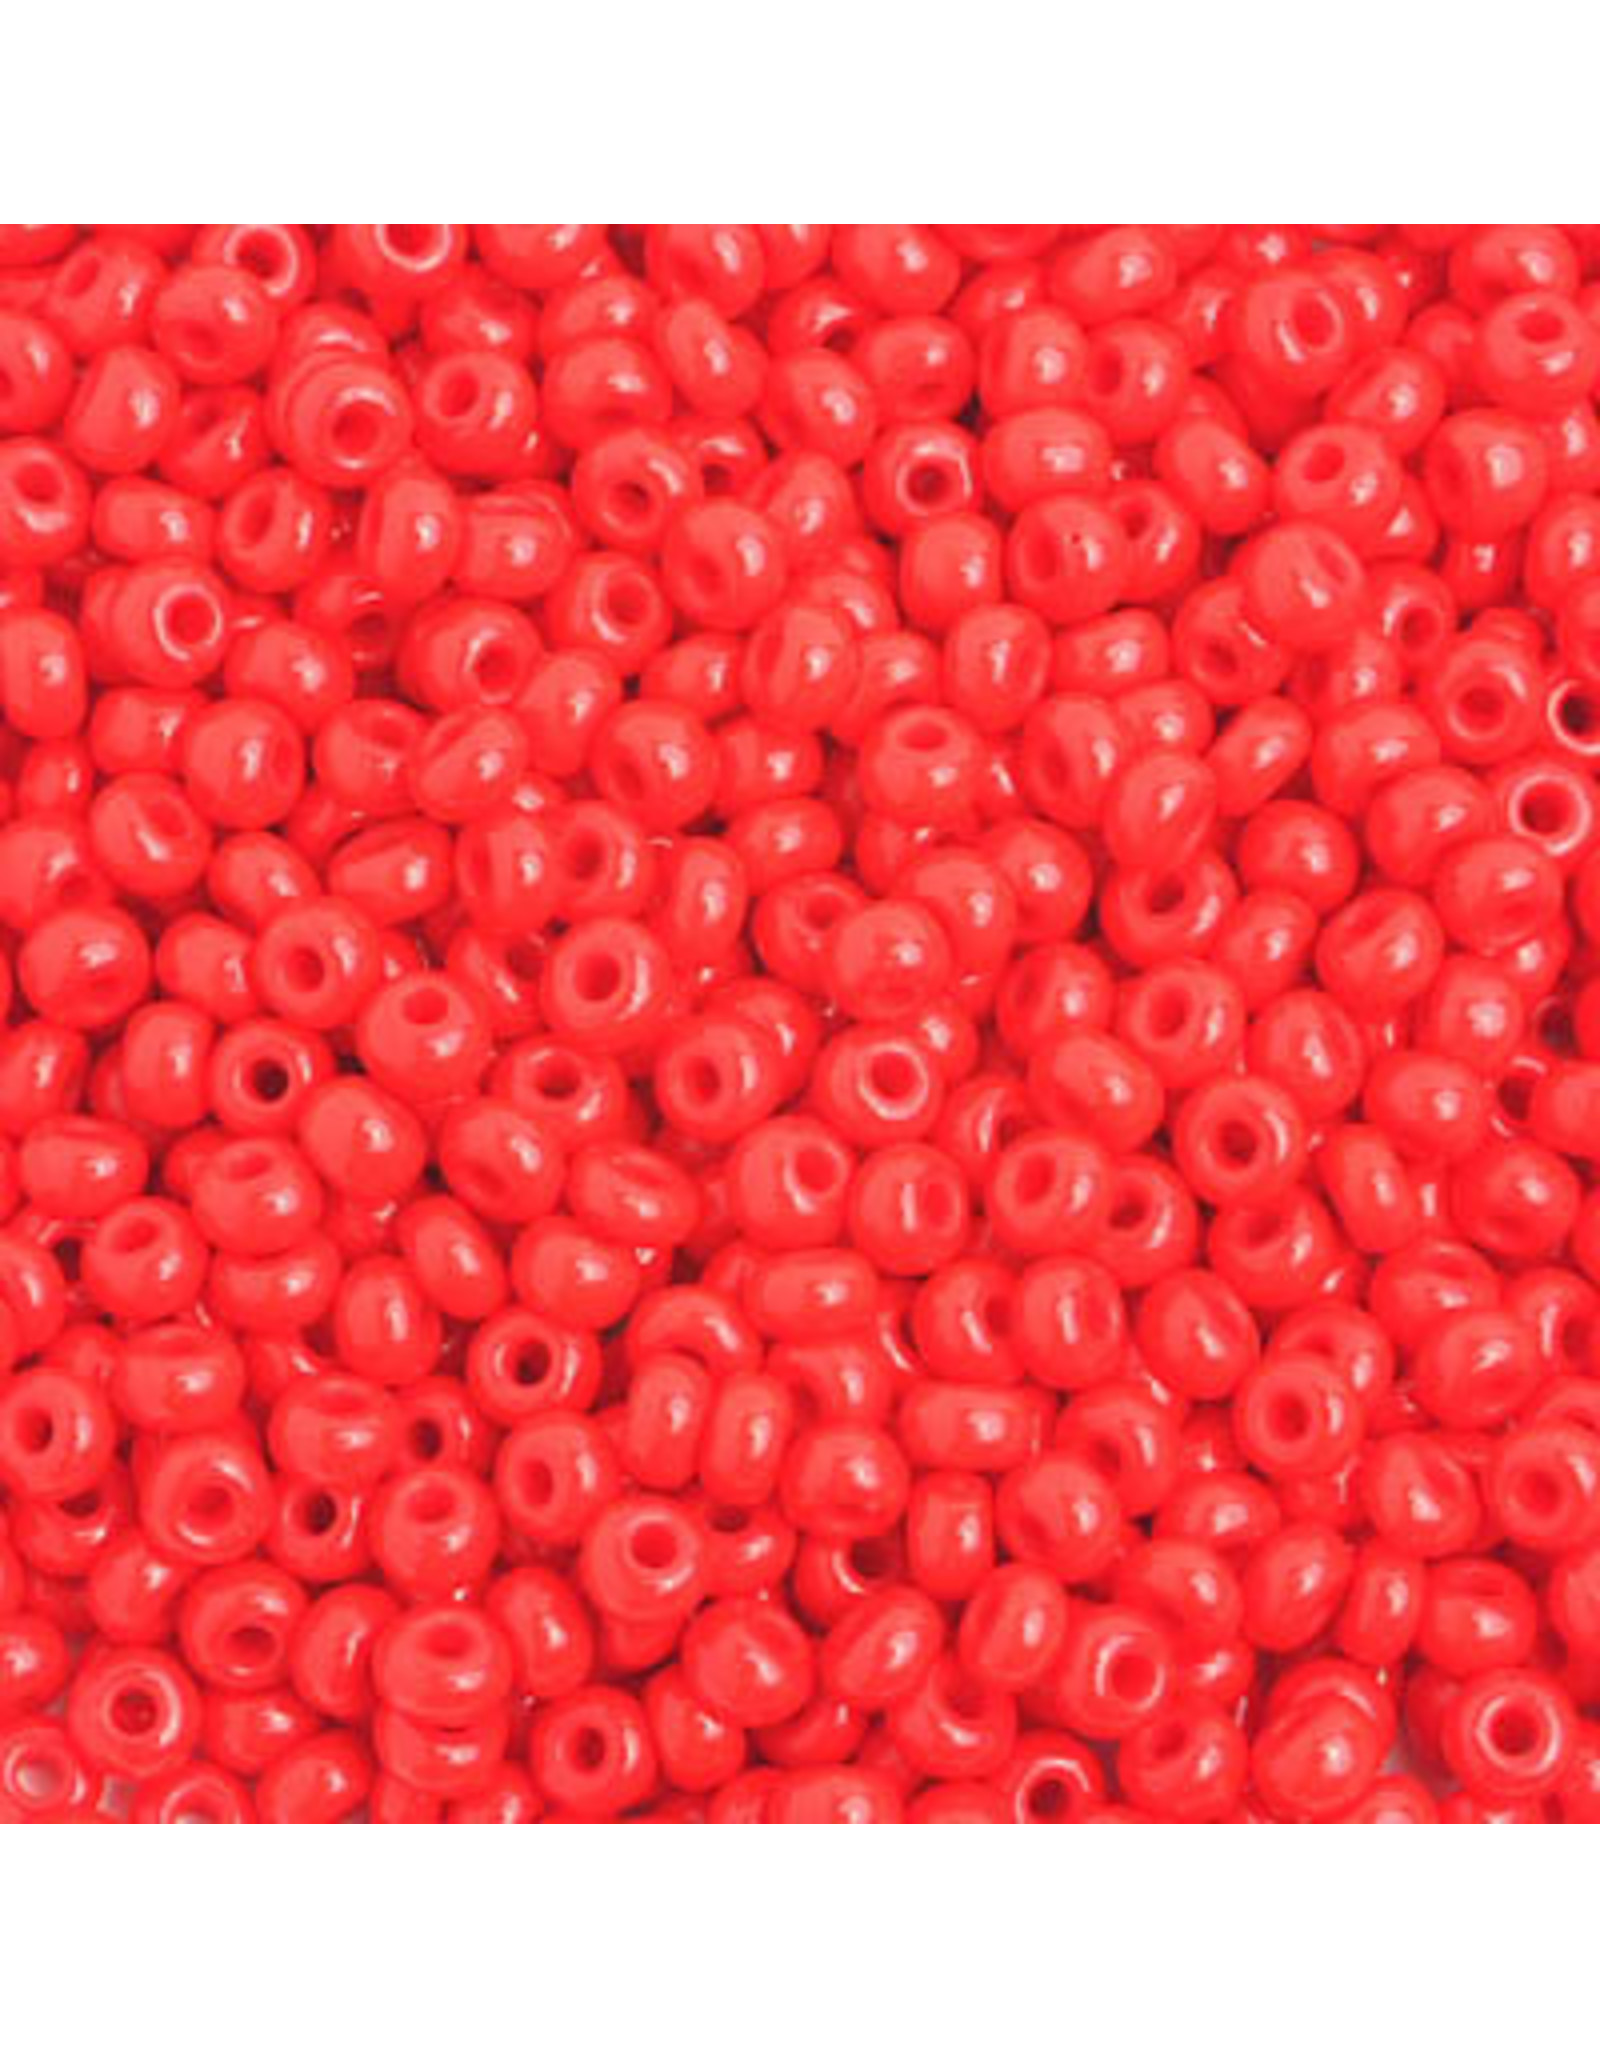 Czech 401630 6 Czech Seed 20g Opaque Light Red